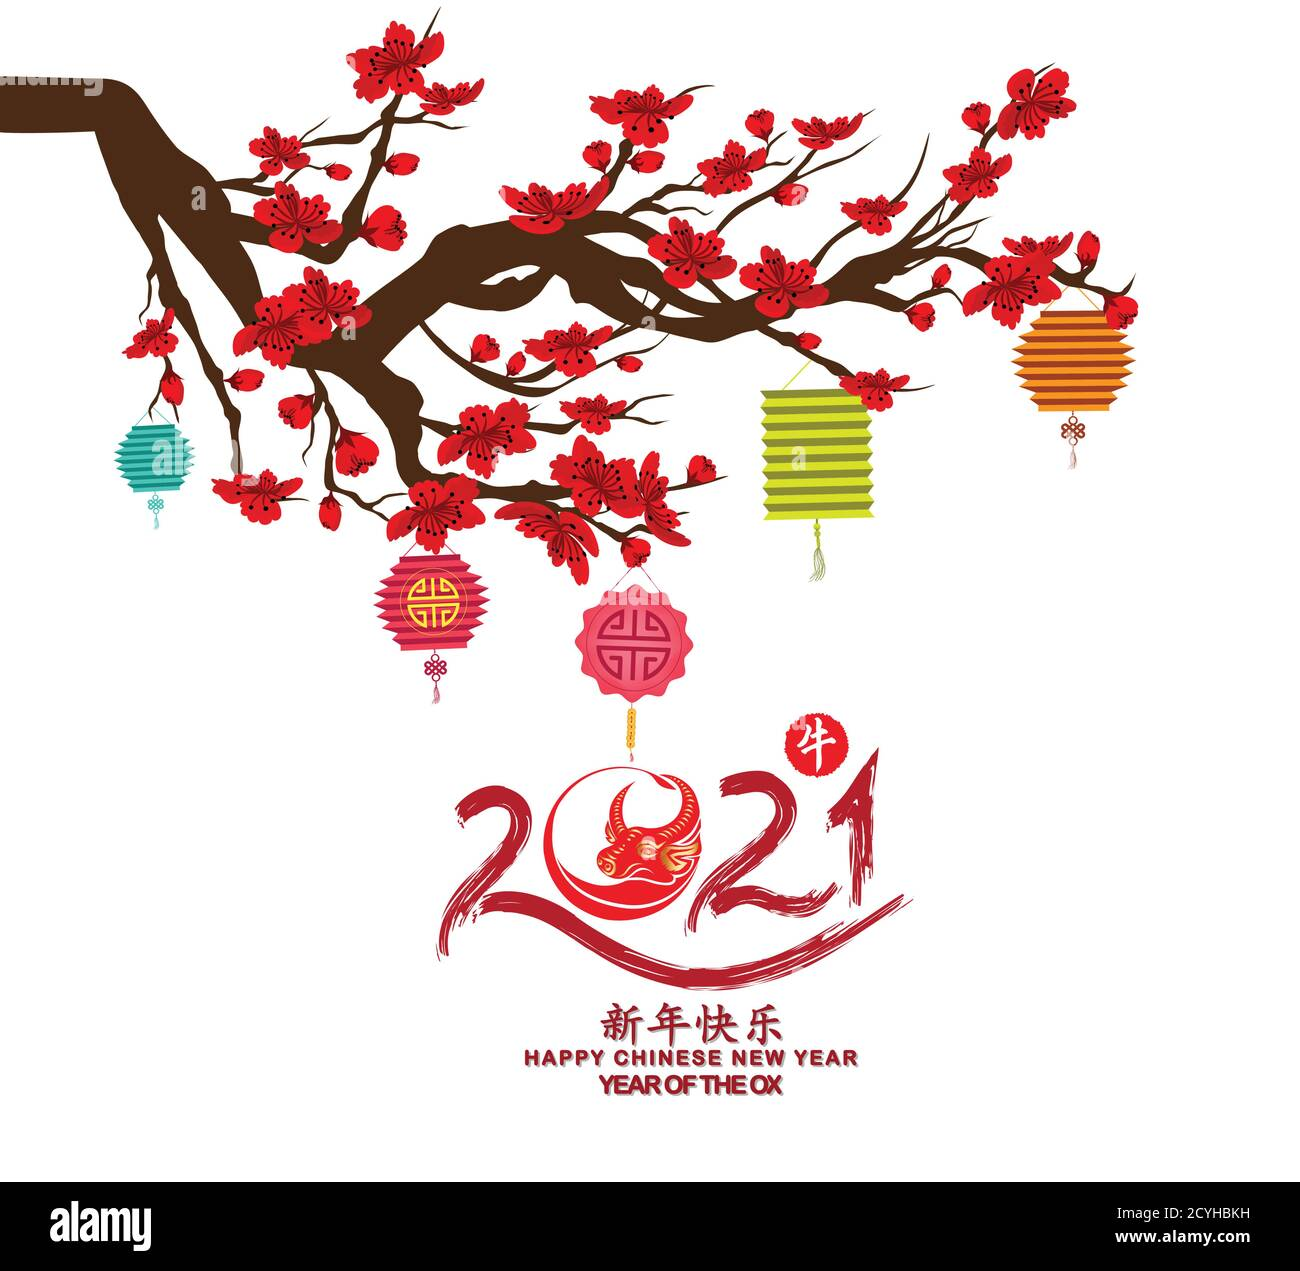 Happy Chinese New Year 2021 Year Of The Ox With Cute Cartoon Ox Chinese Translation Happy Chinese New Year 2021 Year Of Ox Stock Vector Image Art Alamy